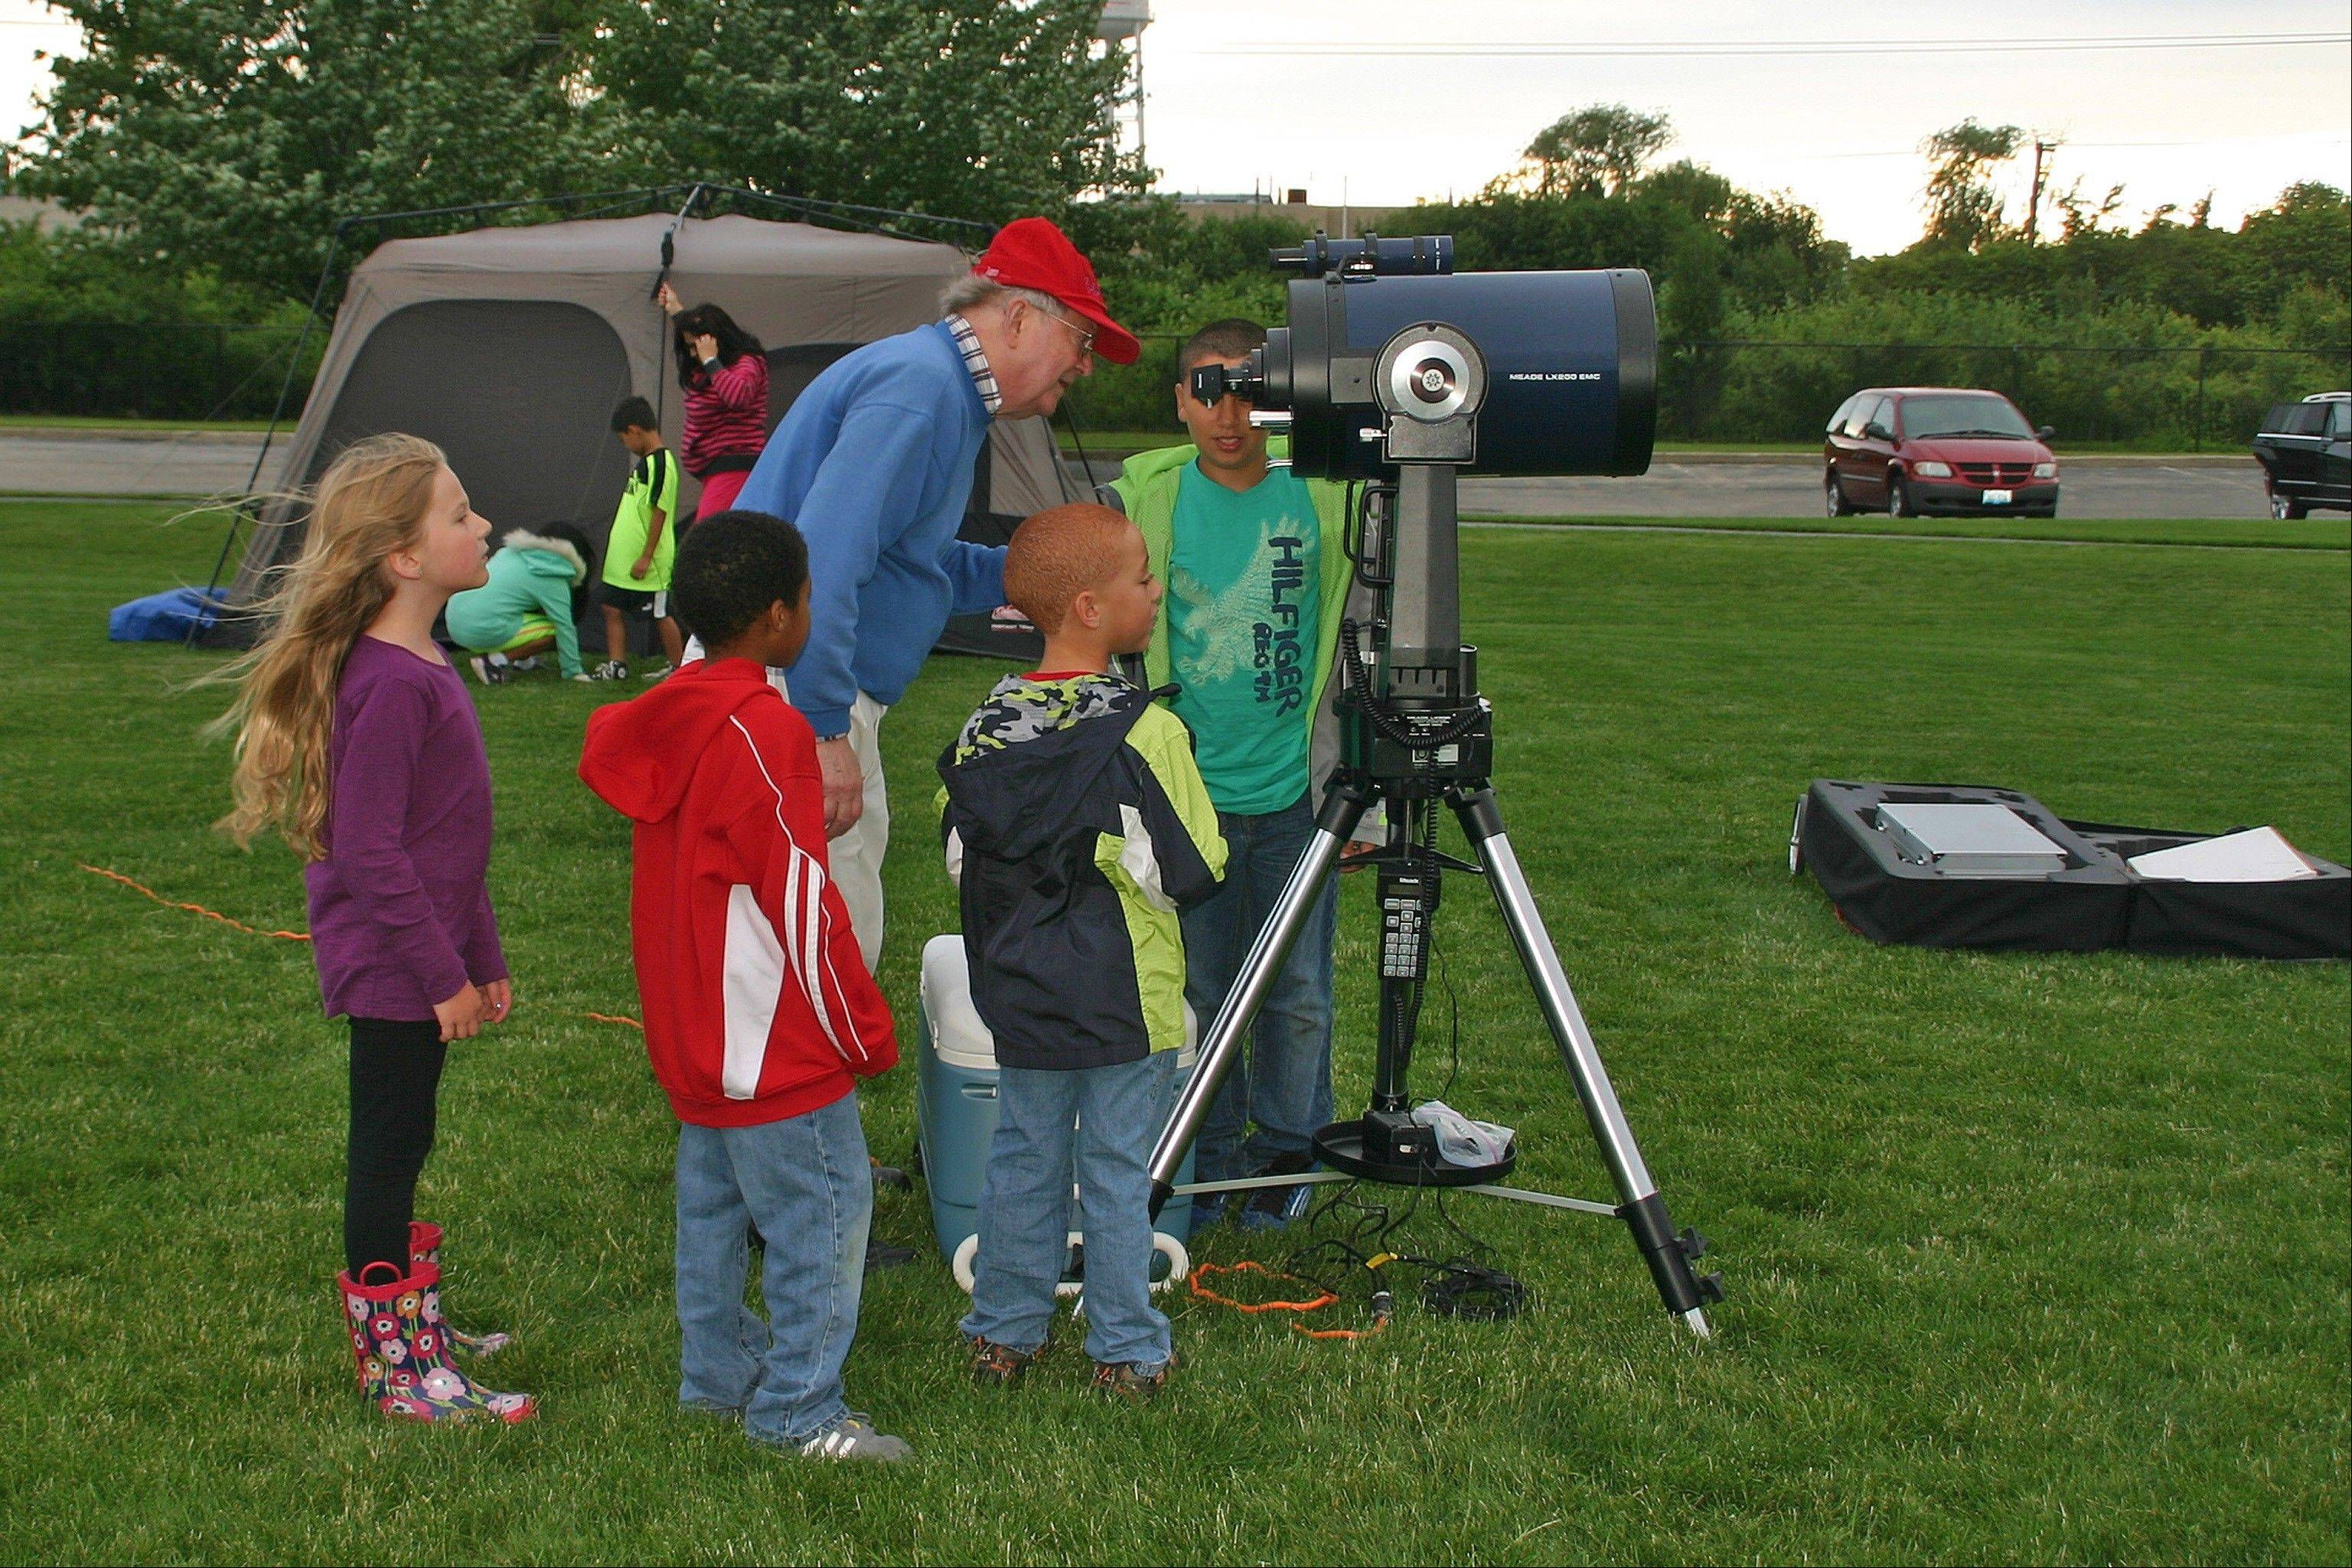 Omar Morris peers at the night sky through the high powered telescope provided courtesy of the Oakton Community College Astronomy Club.